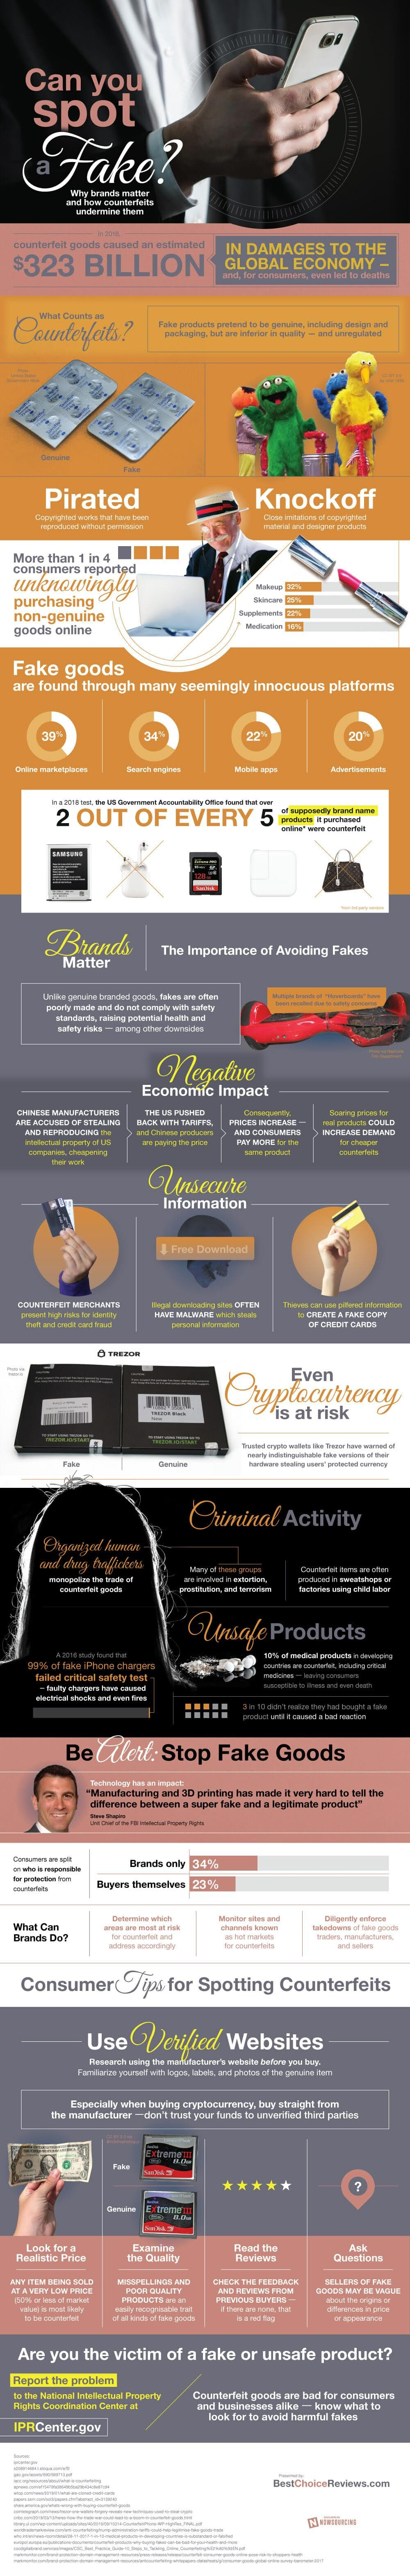 Why Brands Matter and How Counterfeits Undermine Them #infographic